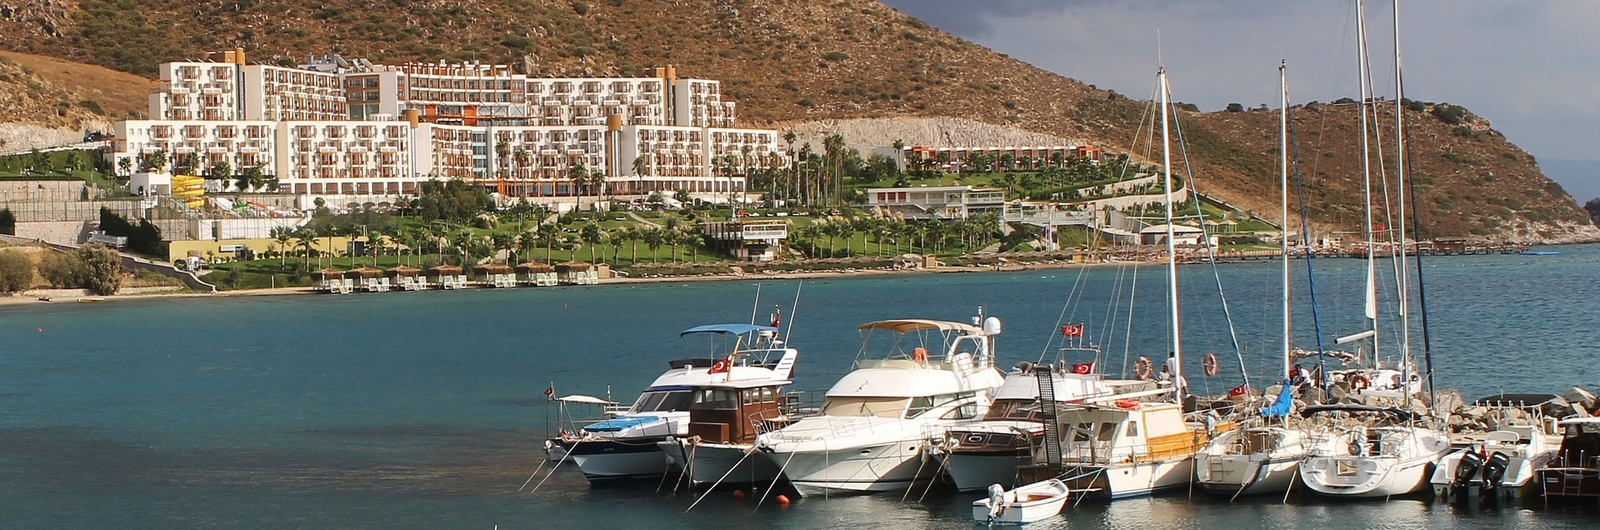 bodrum city header